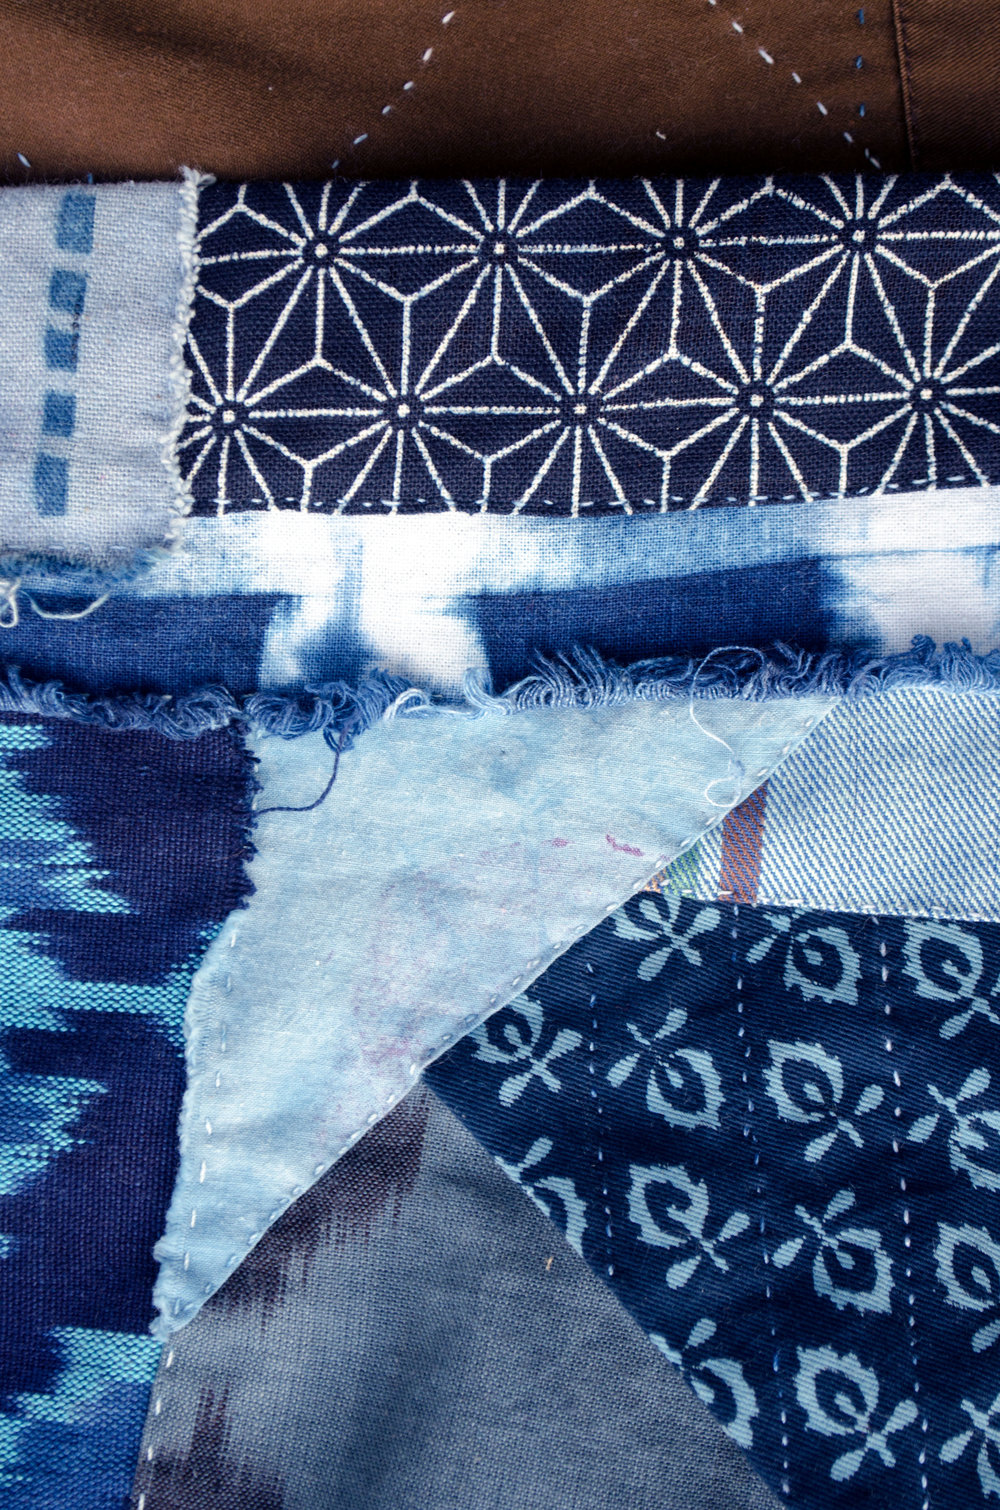 Indigo dyed cottons patched in the boro style